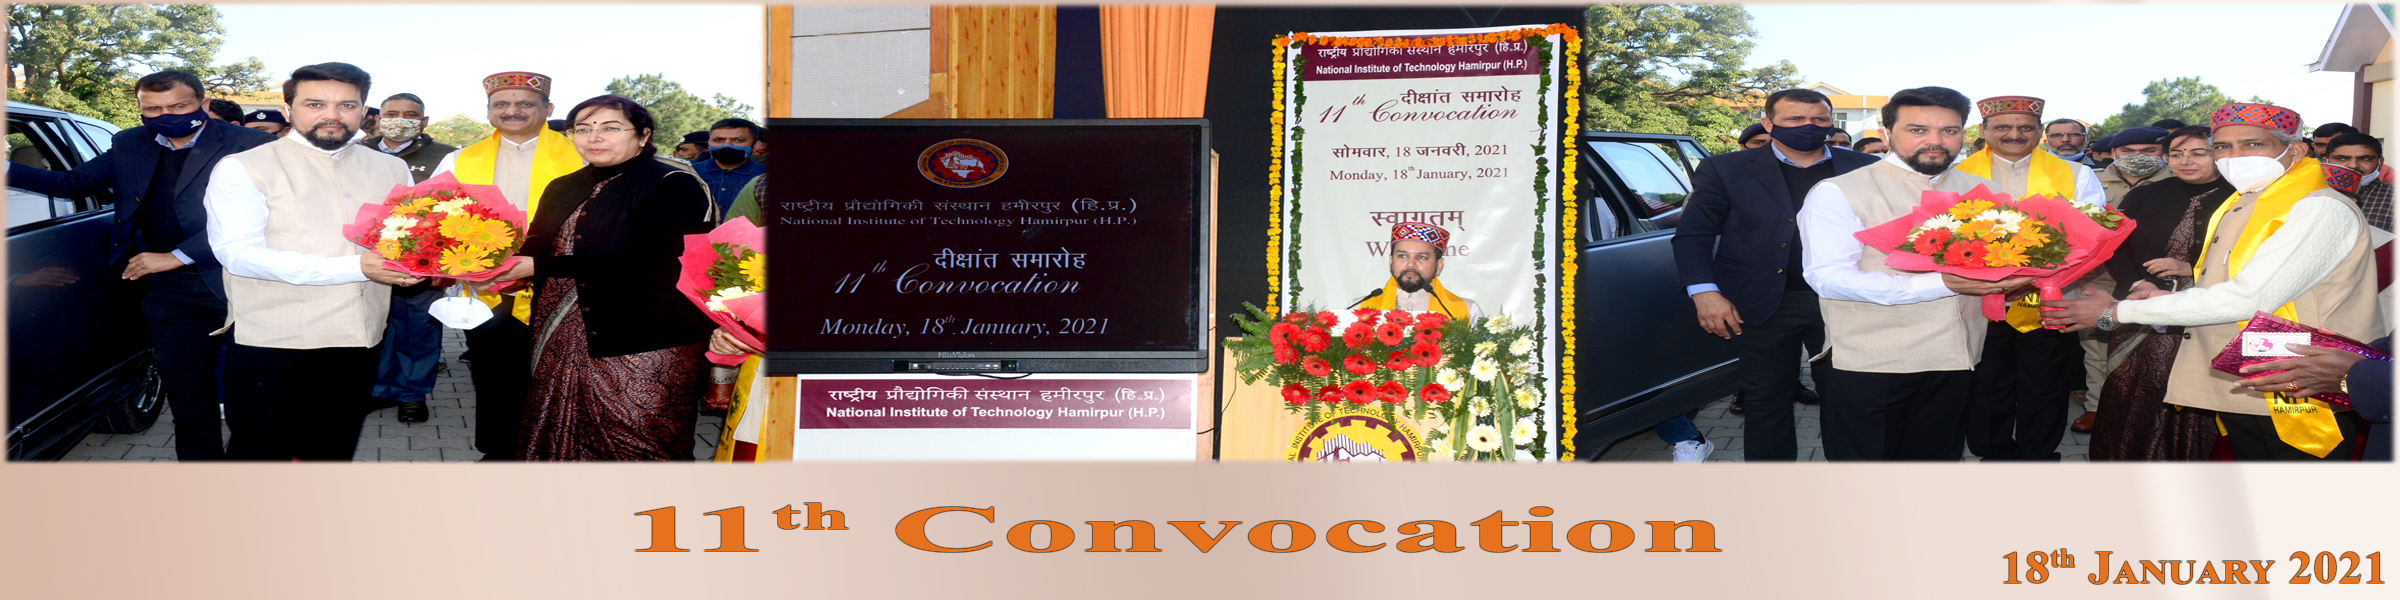 11th Convocation NIT Hamirpur 3